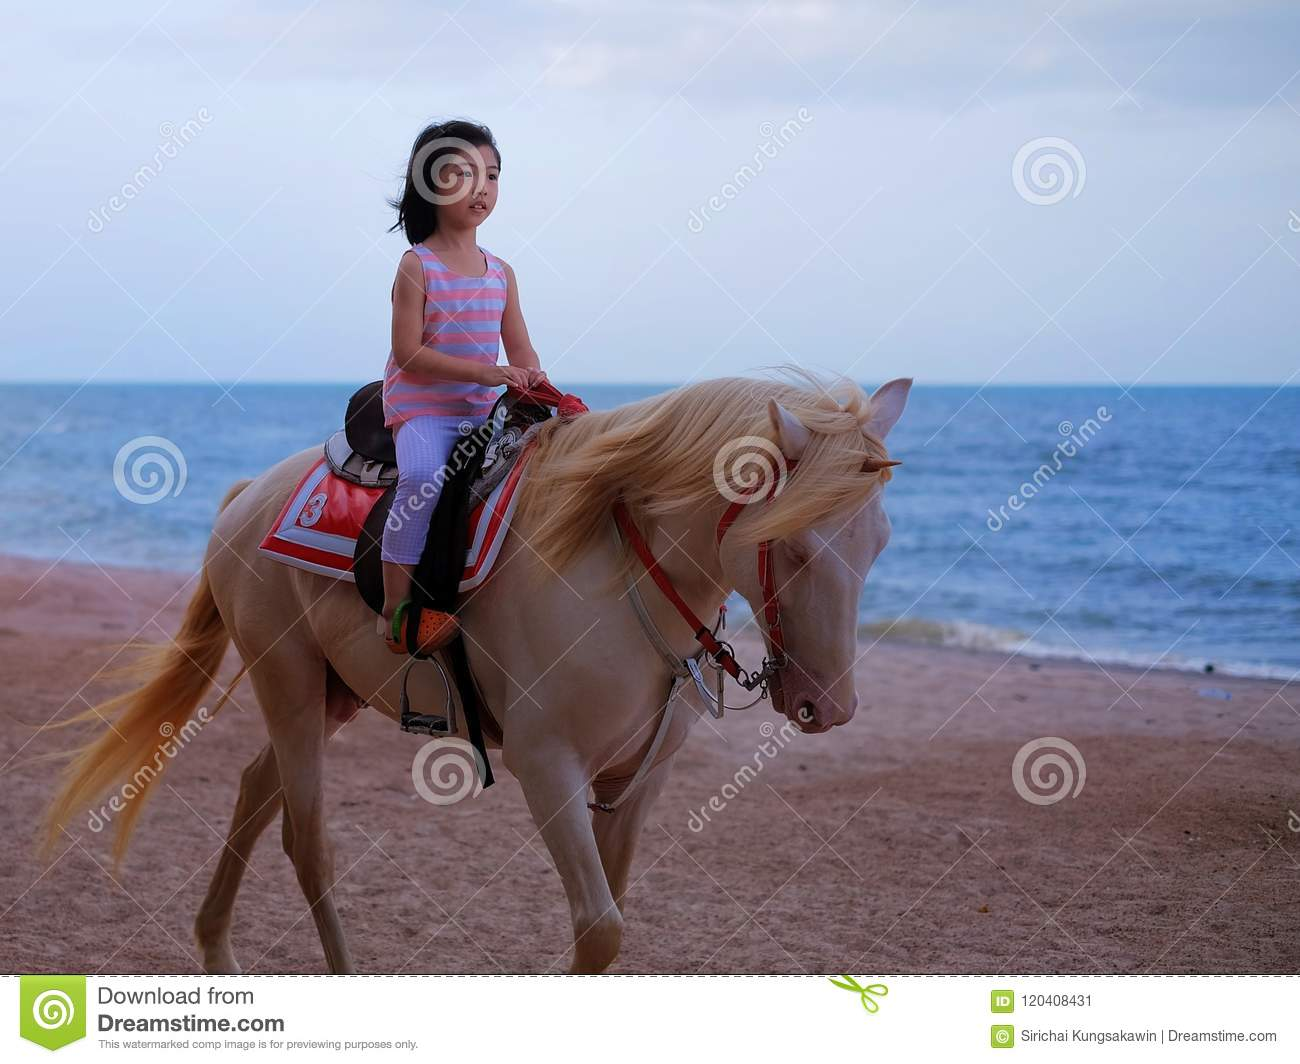 An Asian girl riding a white horse, strolling along a tropical beach on a  sunny day.